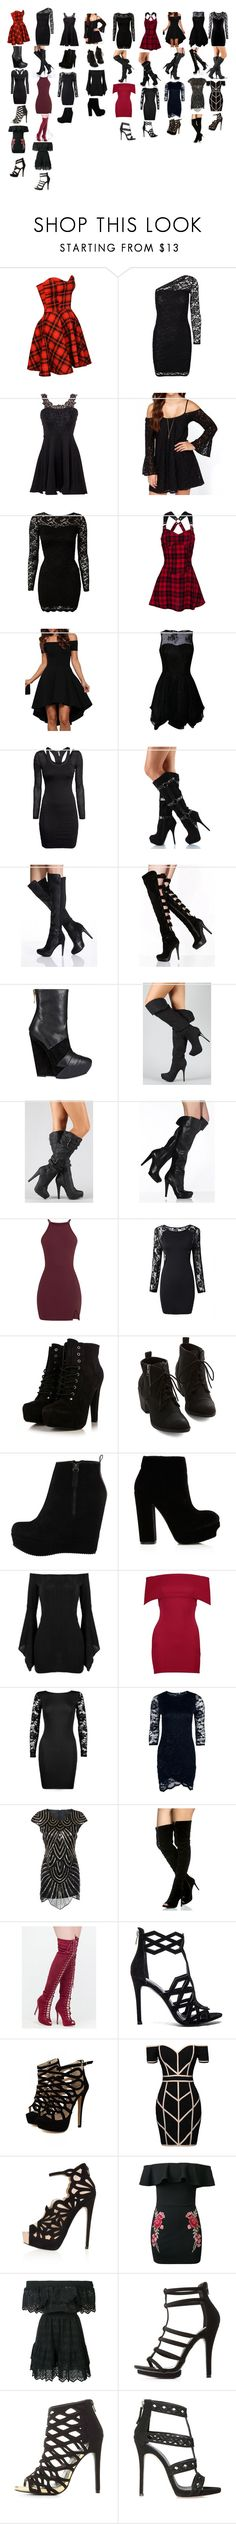 """going to the club 5"" by moree-sabra ❤ liked on Polyvore featuring Vero Moda, John Zack, H&M, Liliana, Victoria's Secret, Gareth Pugh, ALDO, Boohoo, Kendall + Kylie and Command"